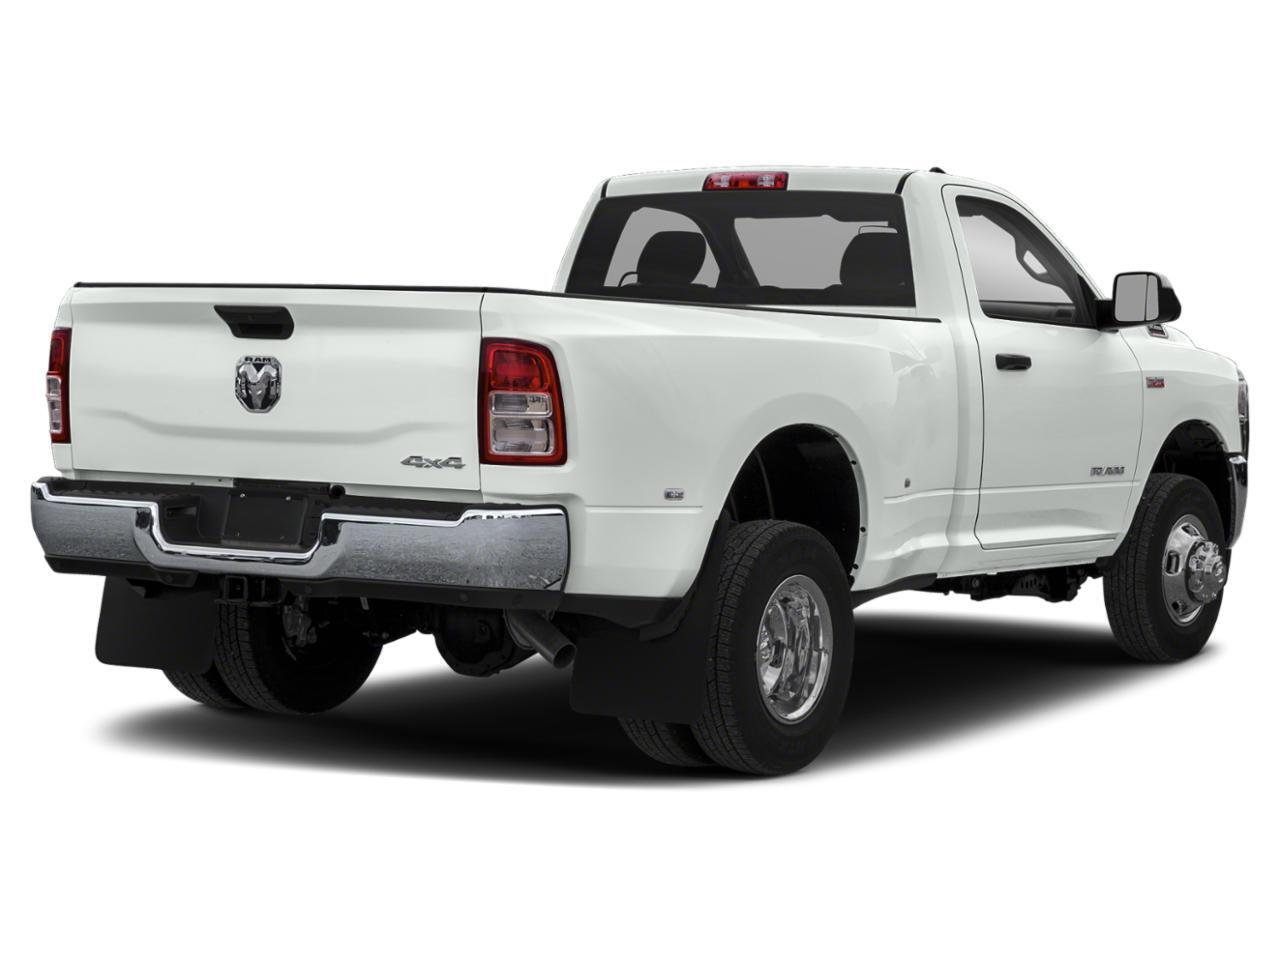 2021 Ram 3500 TRADESMAN REGULAR CAB 4X4 8' BOX Little Valley NY